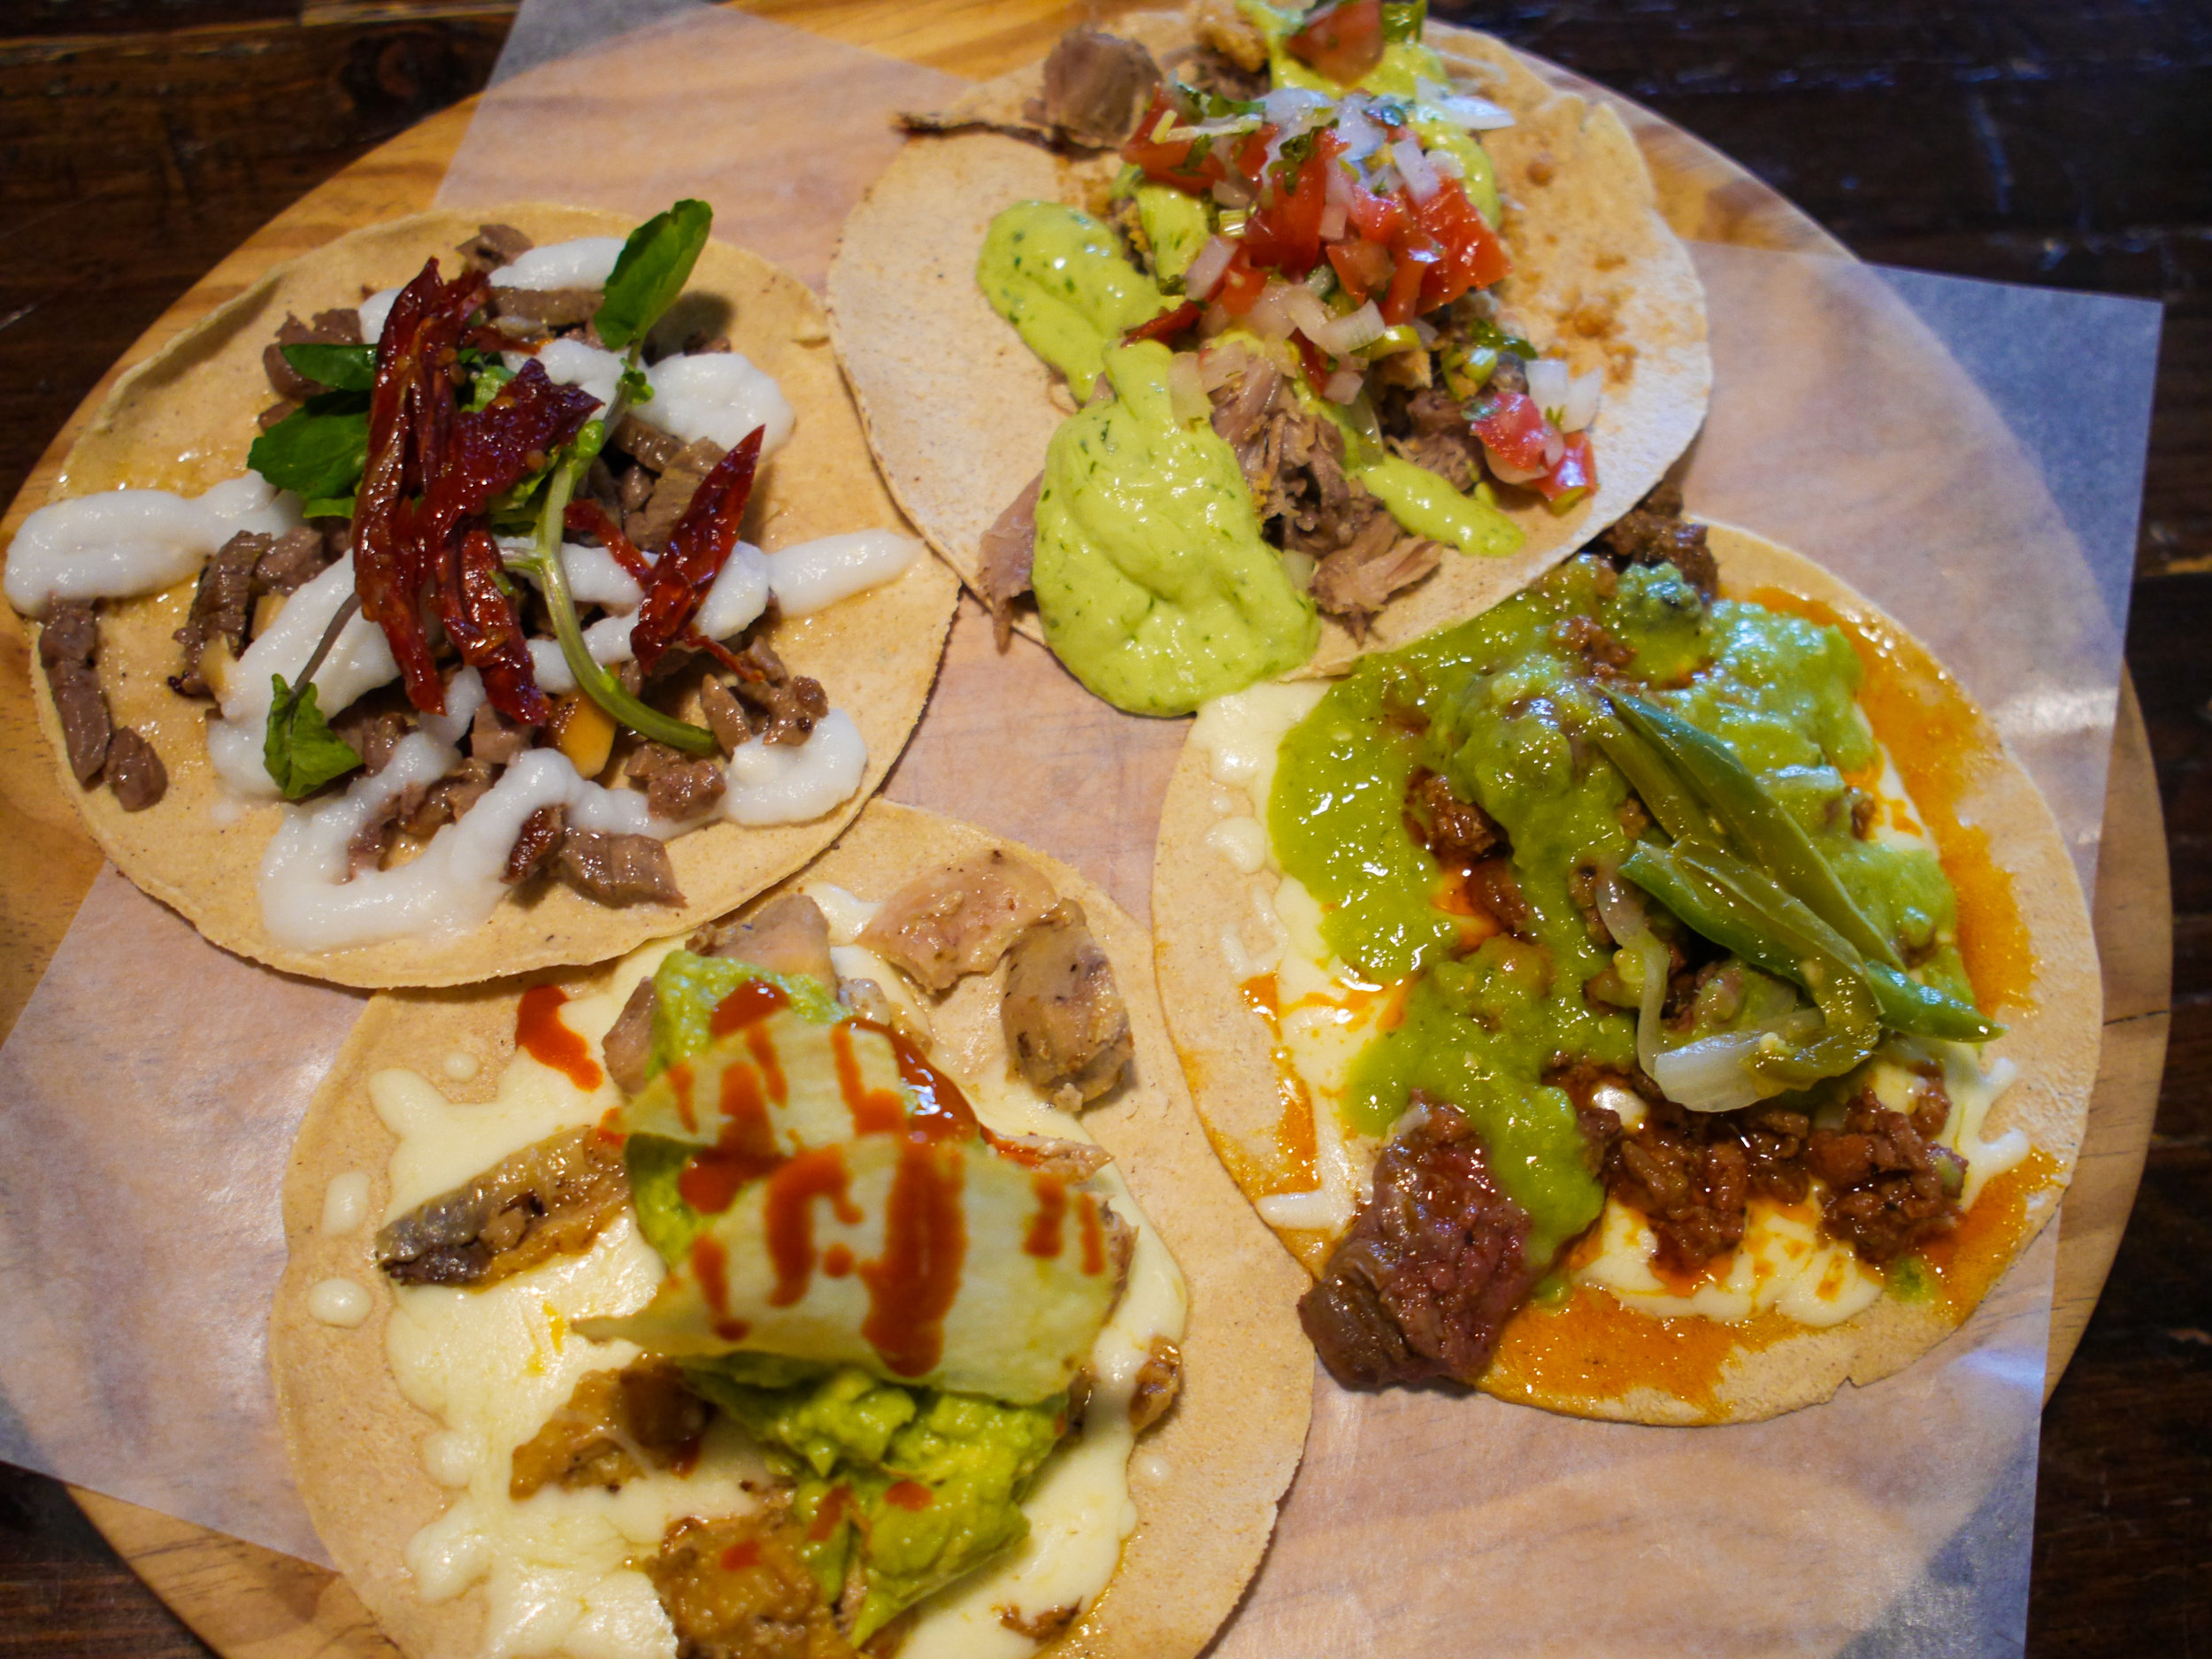 Selection of tacos at Pikio Taco in Barcelona, Spain